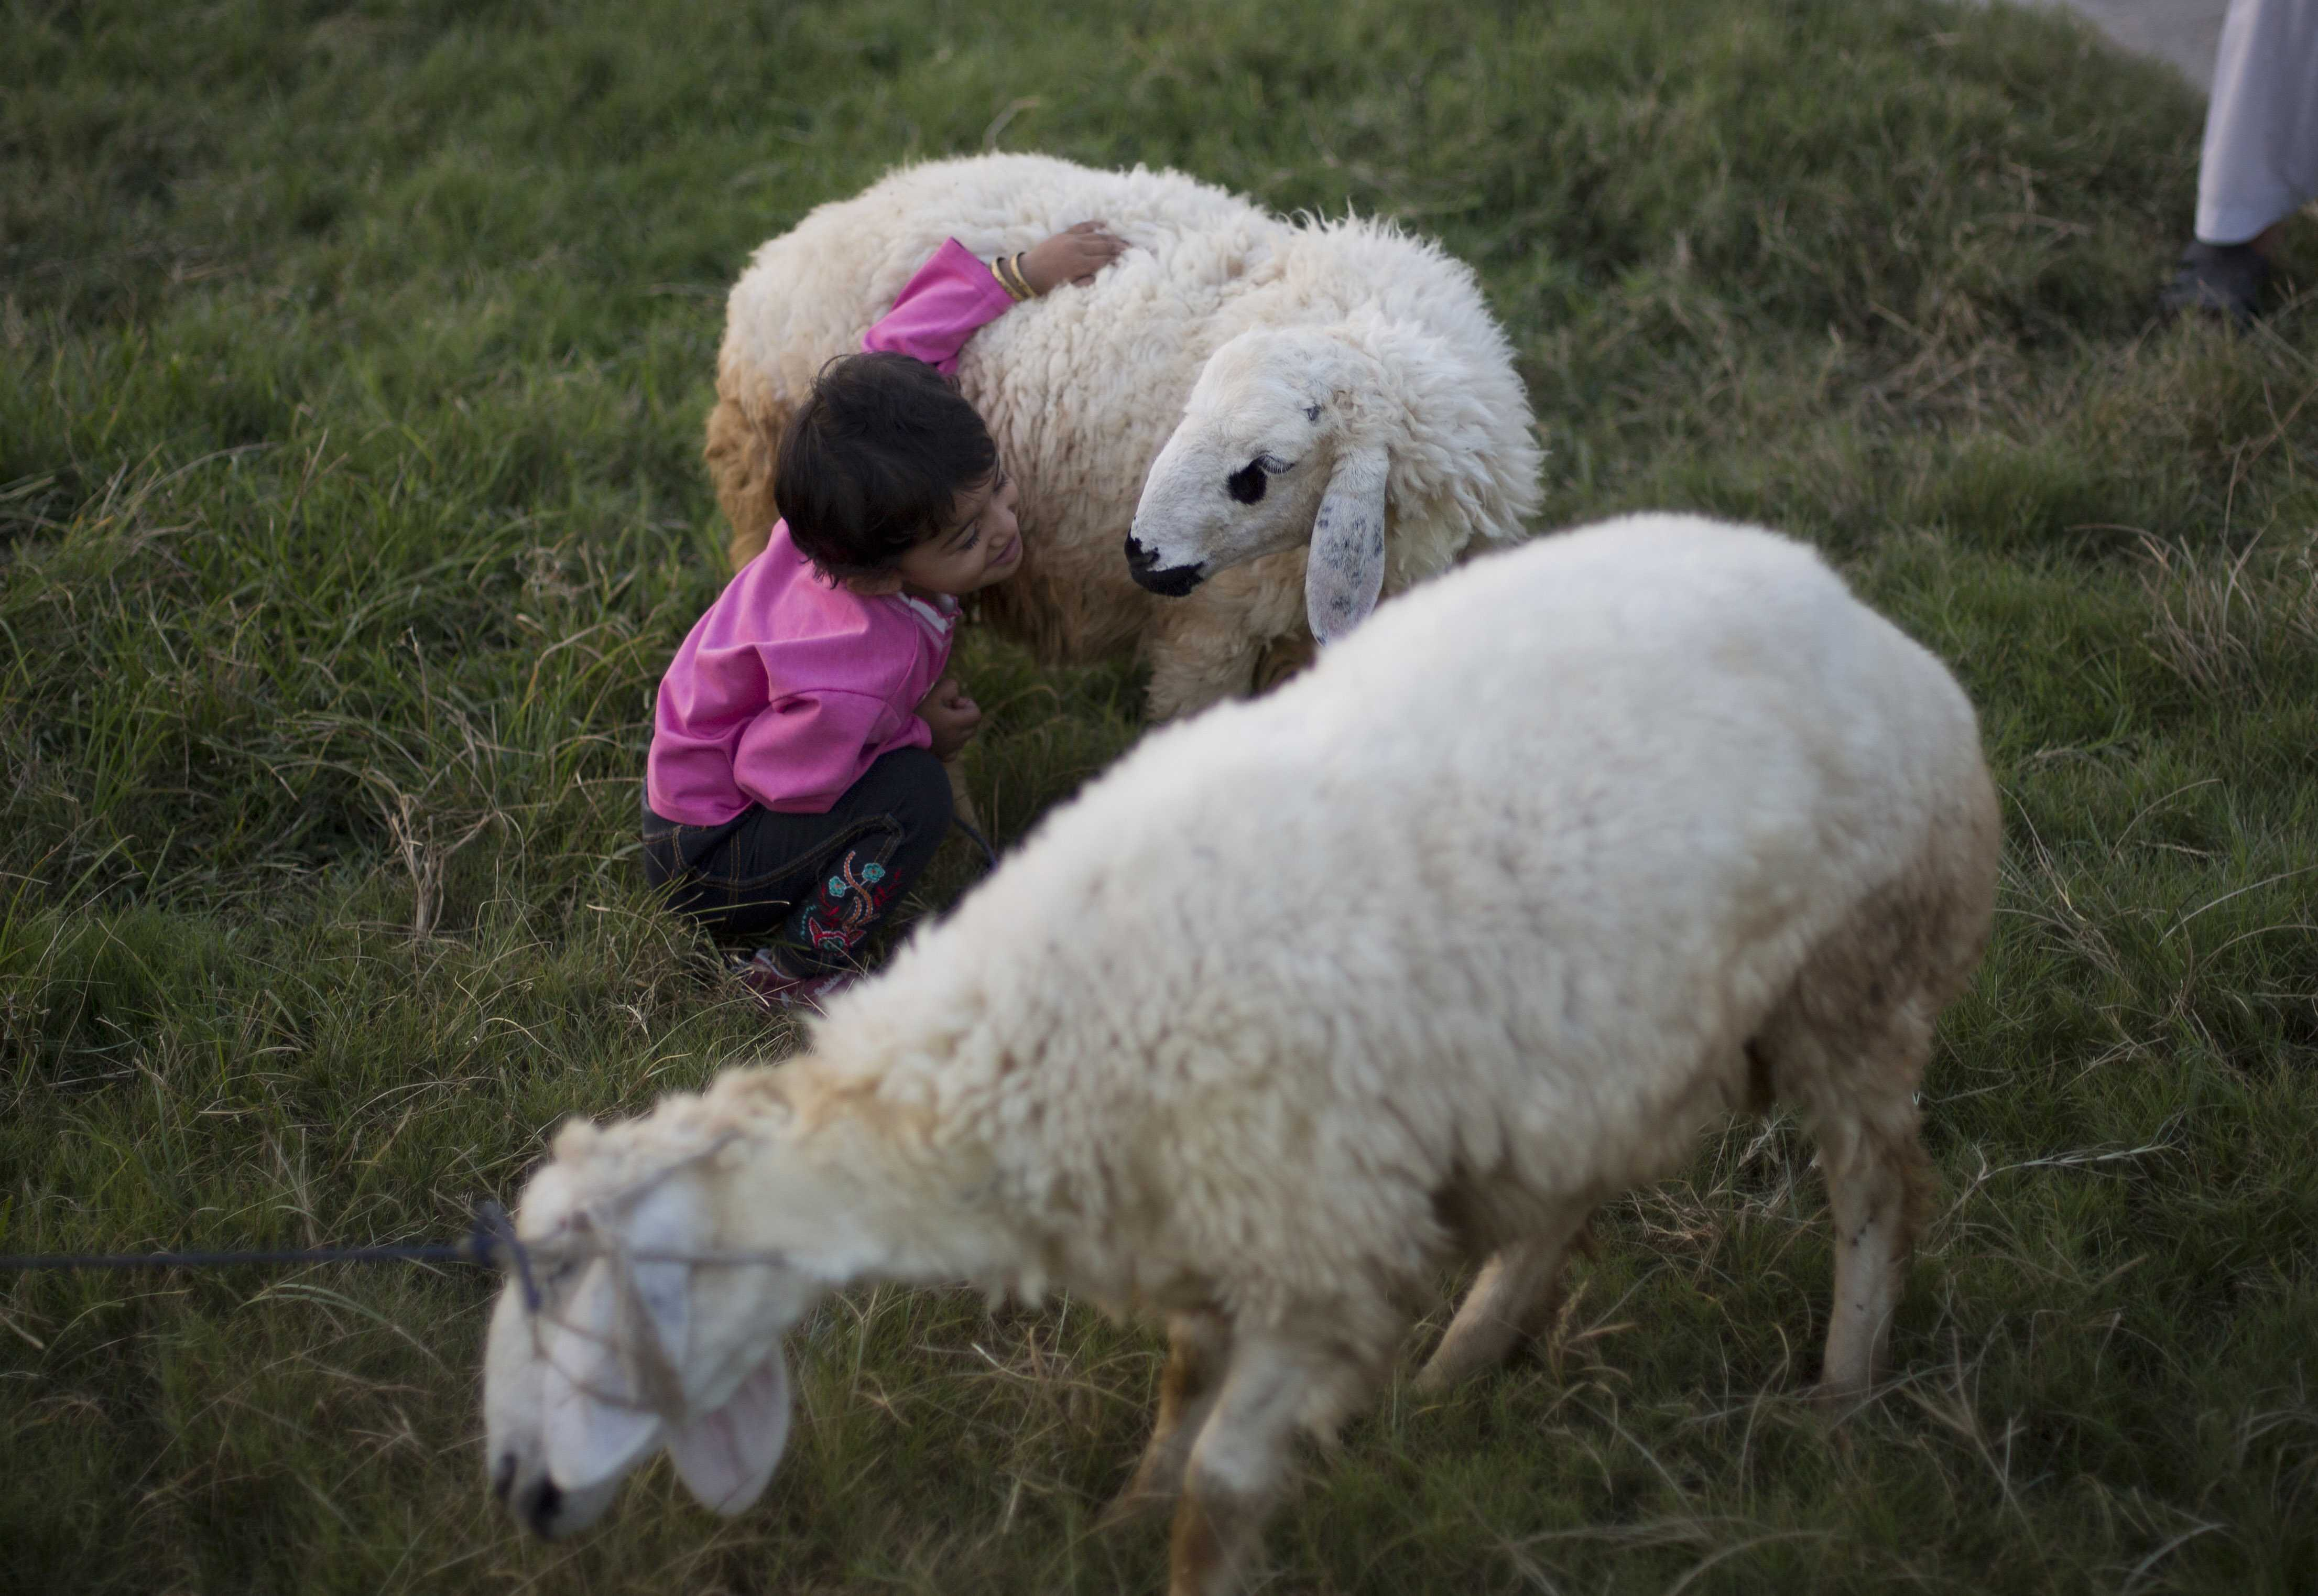 A Pakistani child plays with a sheep bought to be sacrificed on the upcoming Muslims' festival Eid-al-Adha, Tuesday, Sept. 15, 2015 in Islamabad, Pakistan. Muslims all over the world celebrate the three-day festival Eid-al-Adha, by sacrificing sheep, goats, and cows to commemorate the willingness of the Prophet Ibrahim (Abraham to Christians and Jews) to sacrifice his son, Ismail, on God's command. (AP Photo/B.K. Bangash)